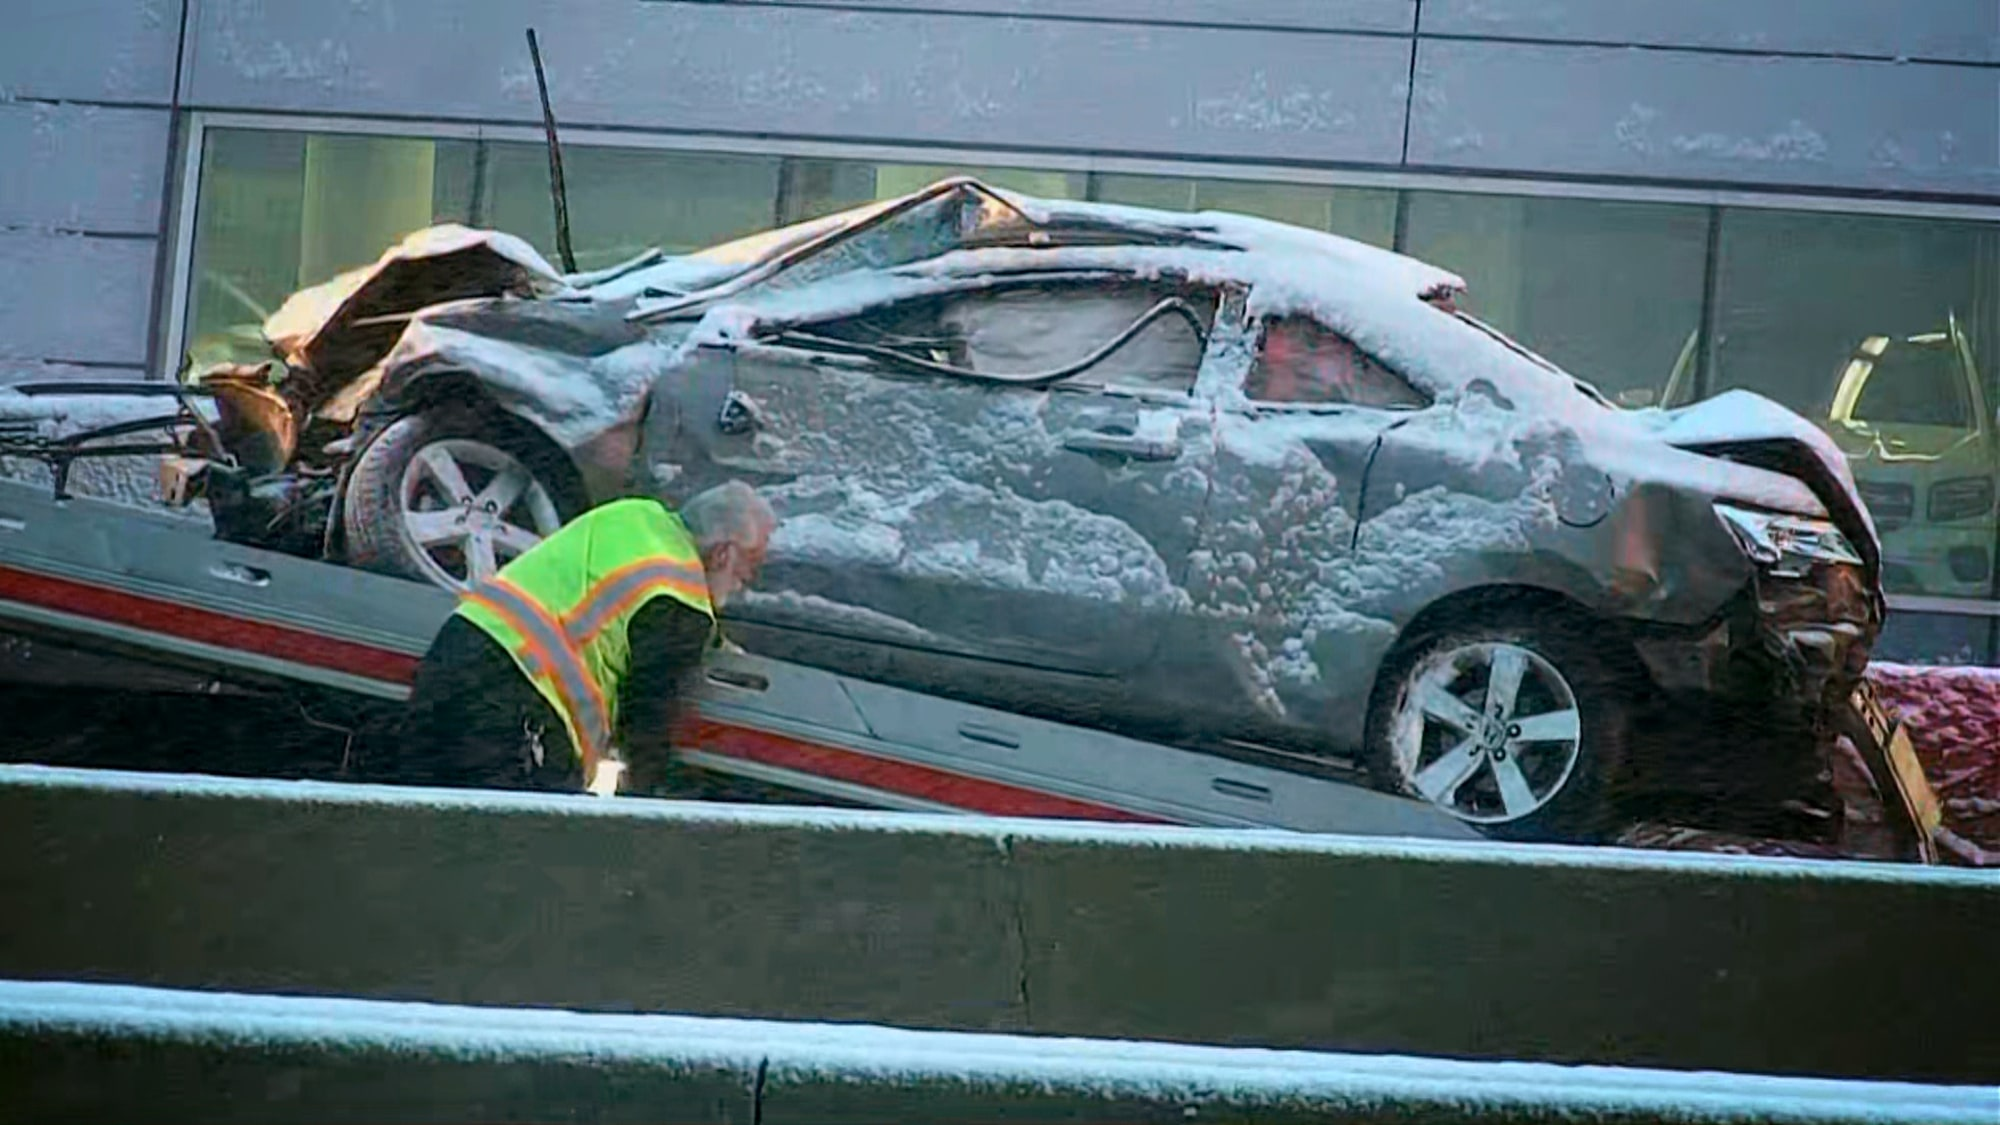 60 Car Highway Crash in Chicago, 14 Hospitalized